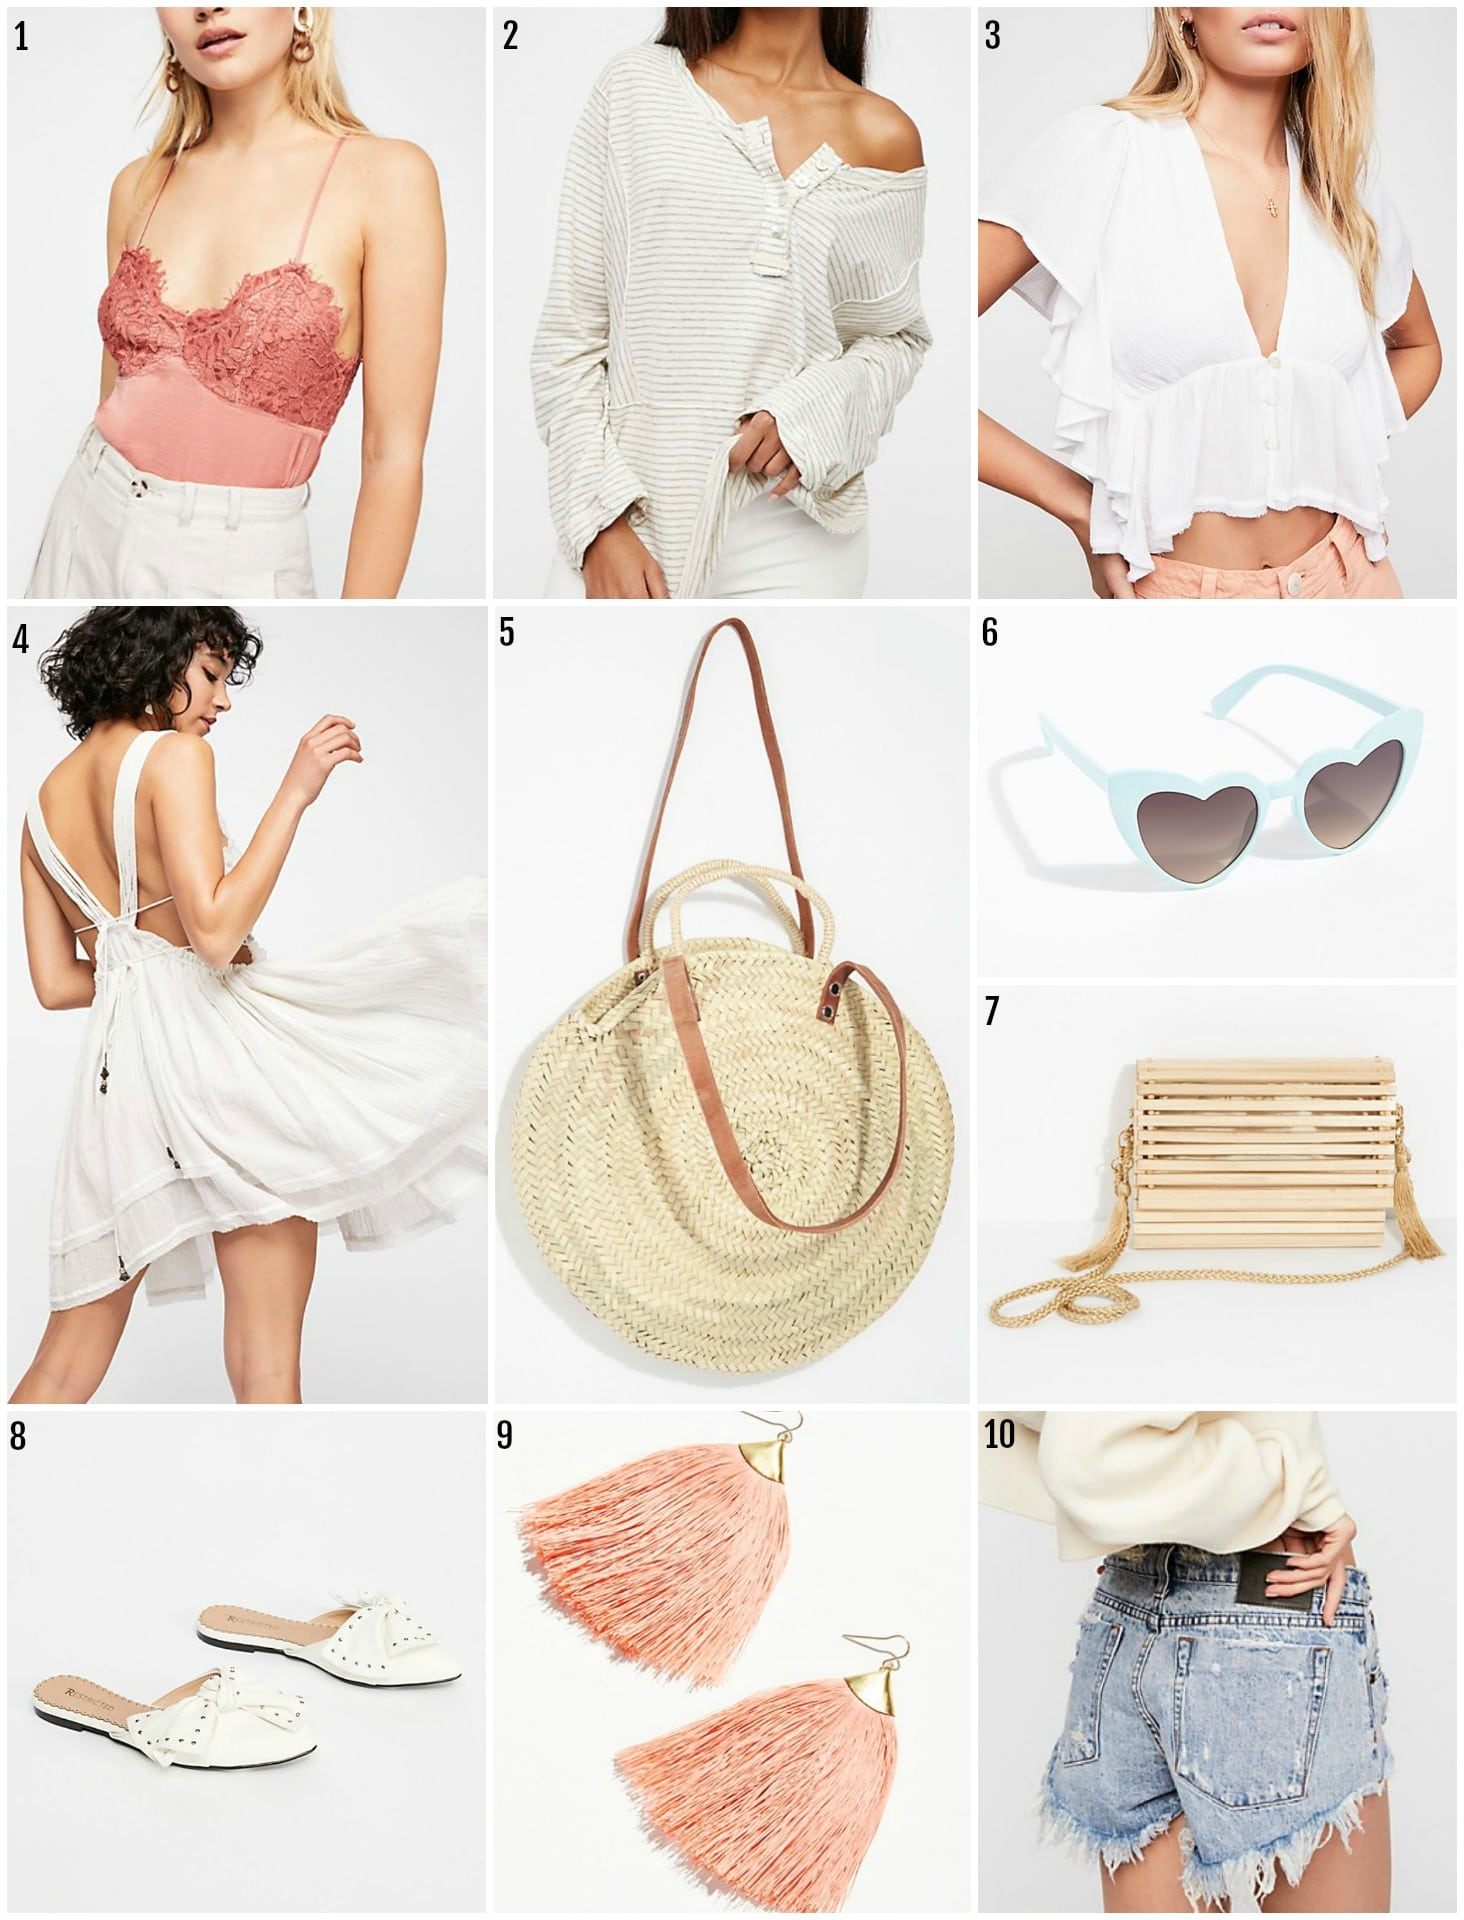 Mash Elle style blogger | spring style |  Free People Spring finds | Free People | fashion inspiration | heart sunglasses | tassle earrings